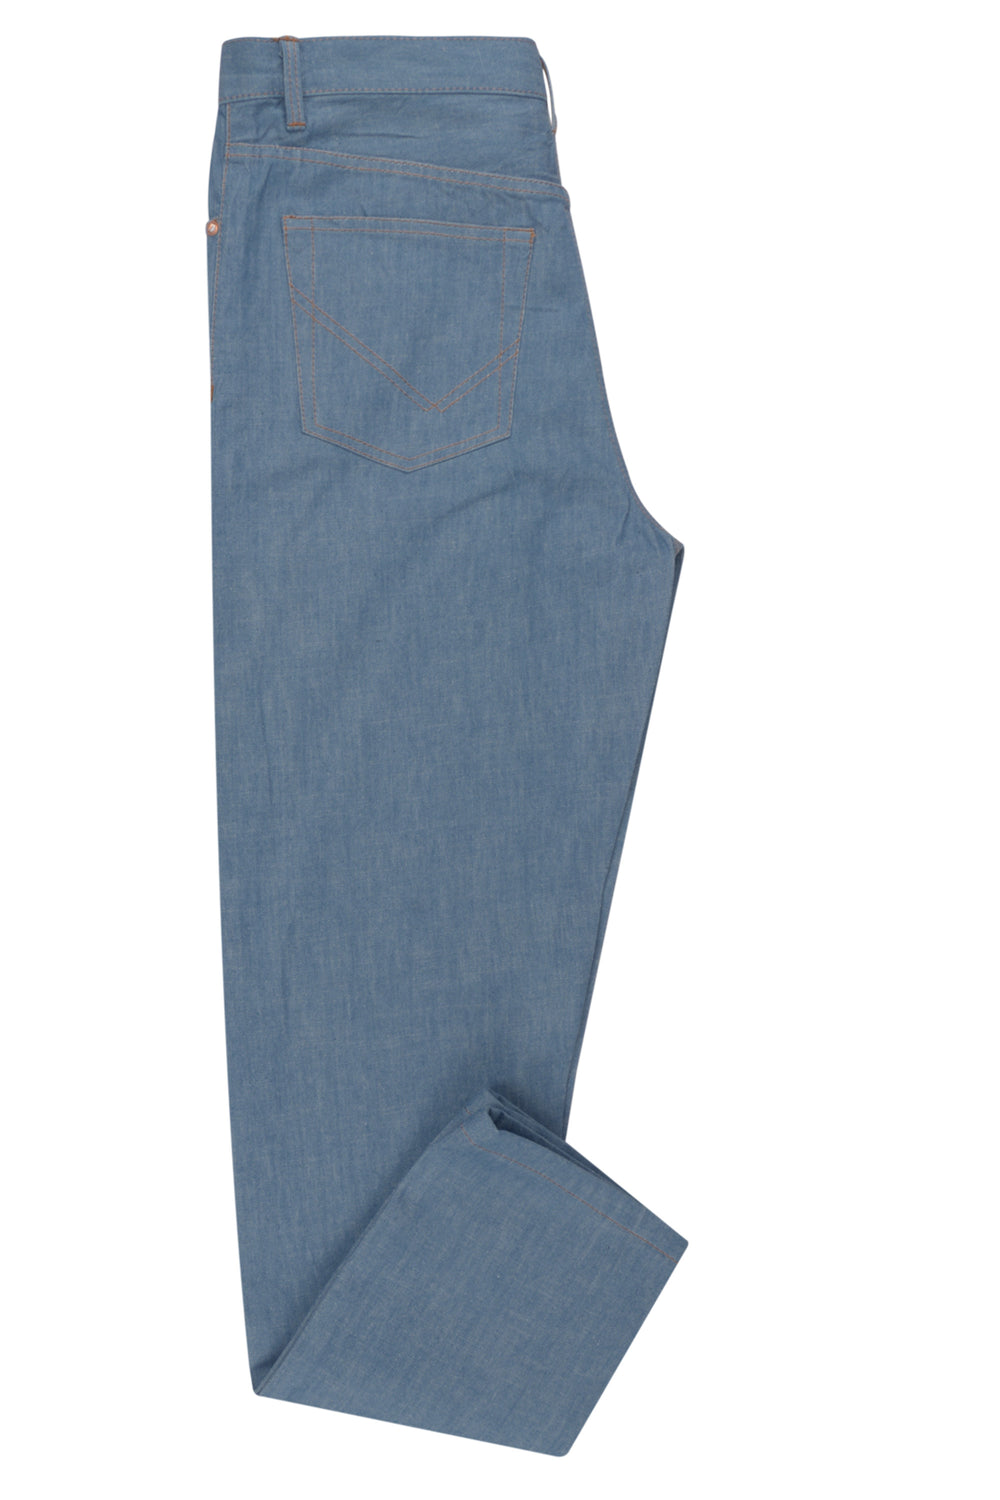 Light Blue Selvedge Jeans - 13 Oz (350995273)